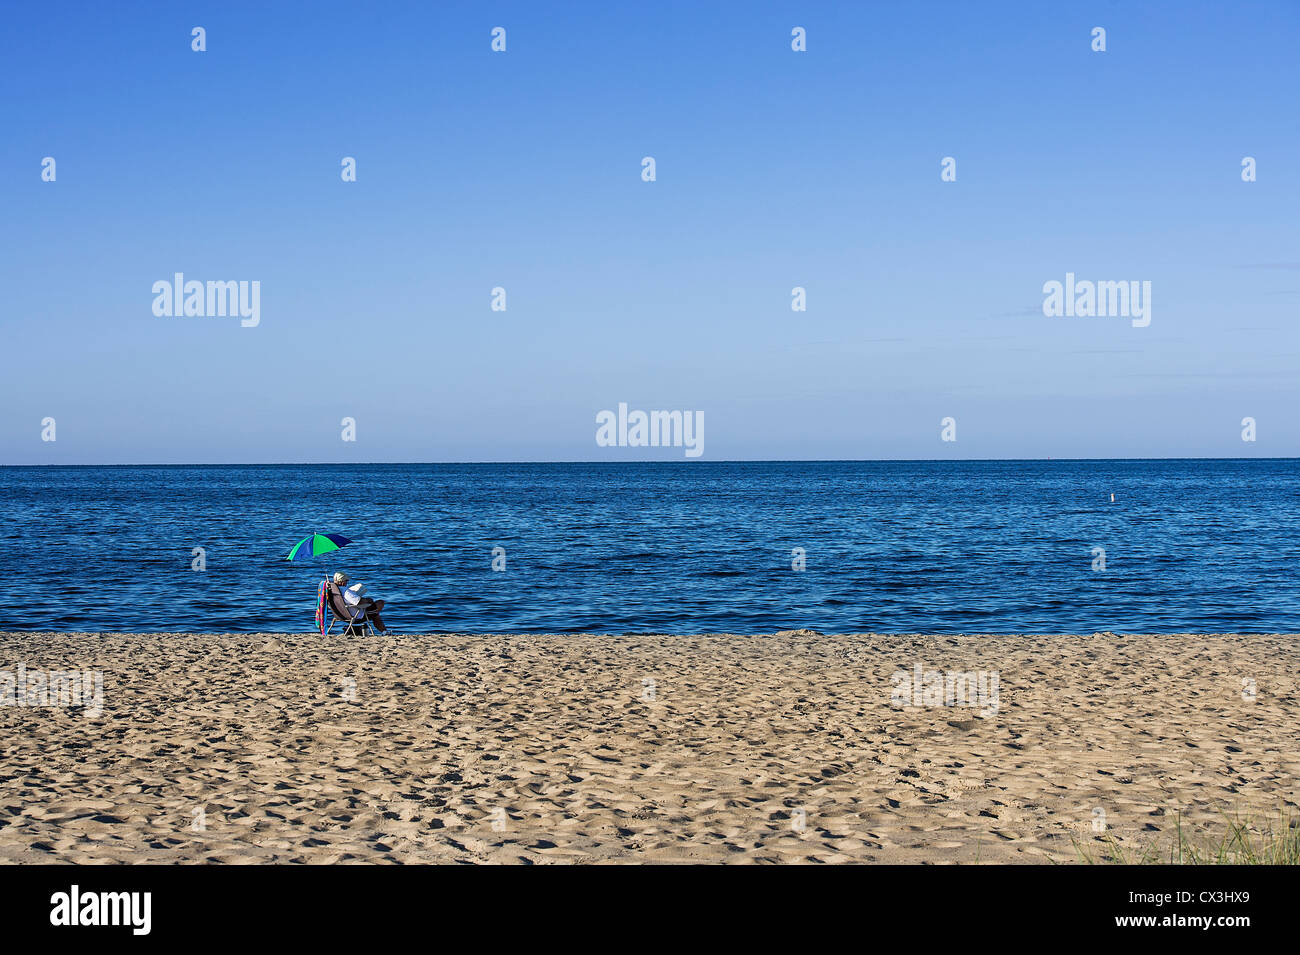 Retired man leisurely reading at the beach. - Stock Image